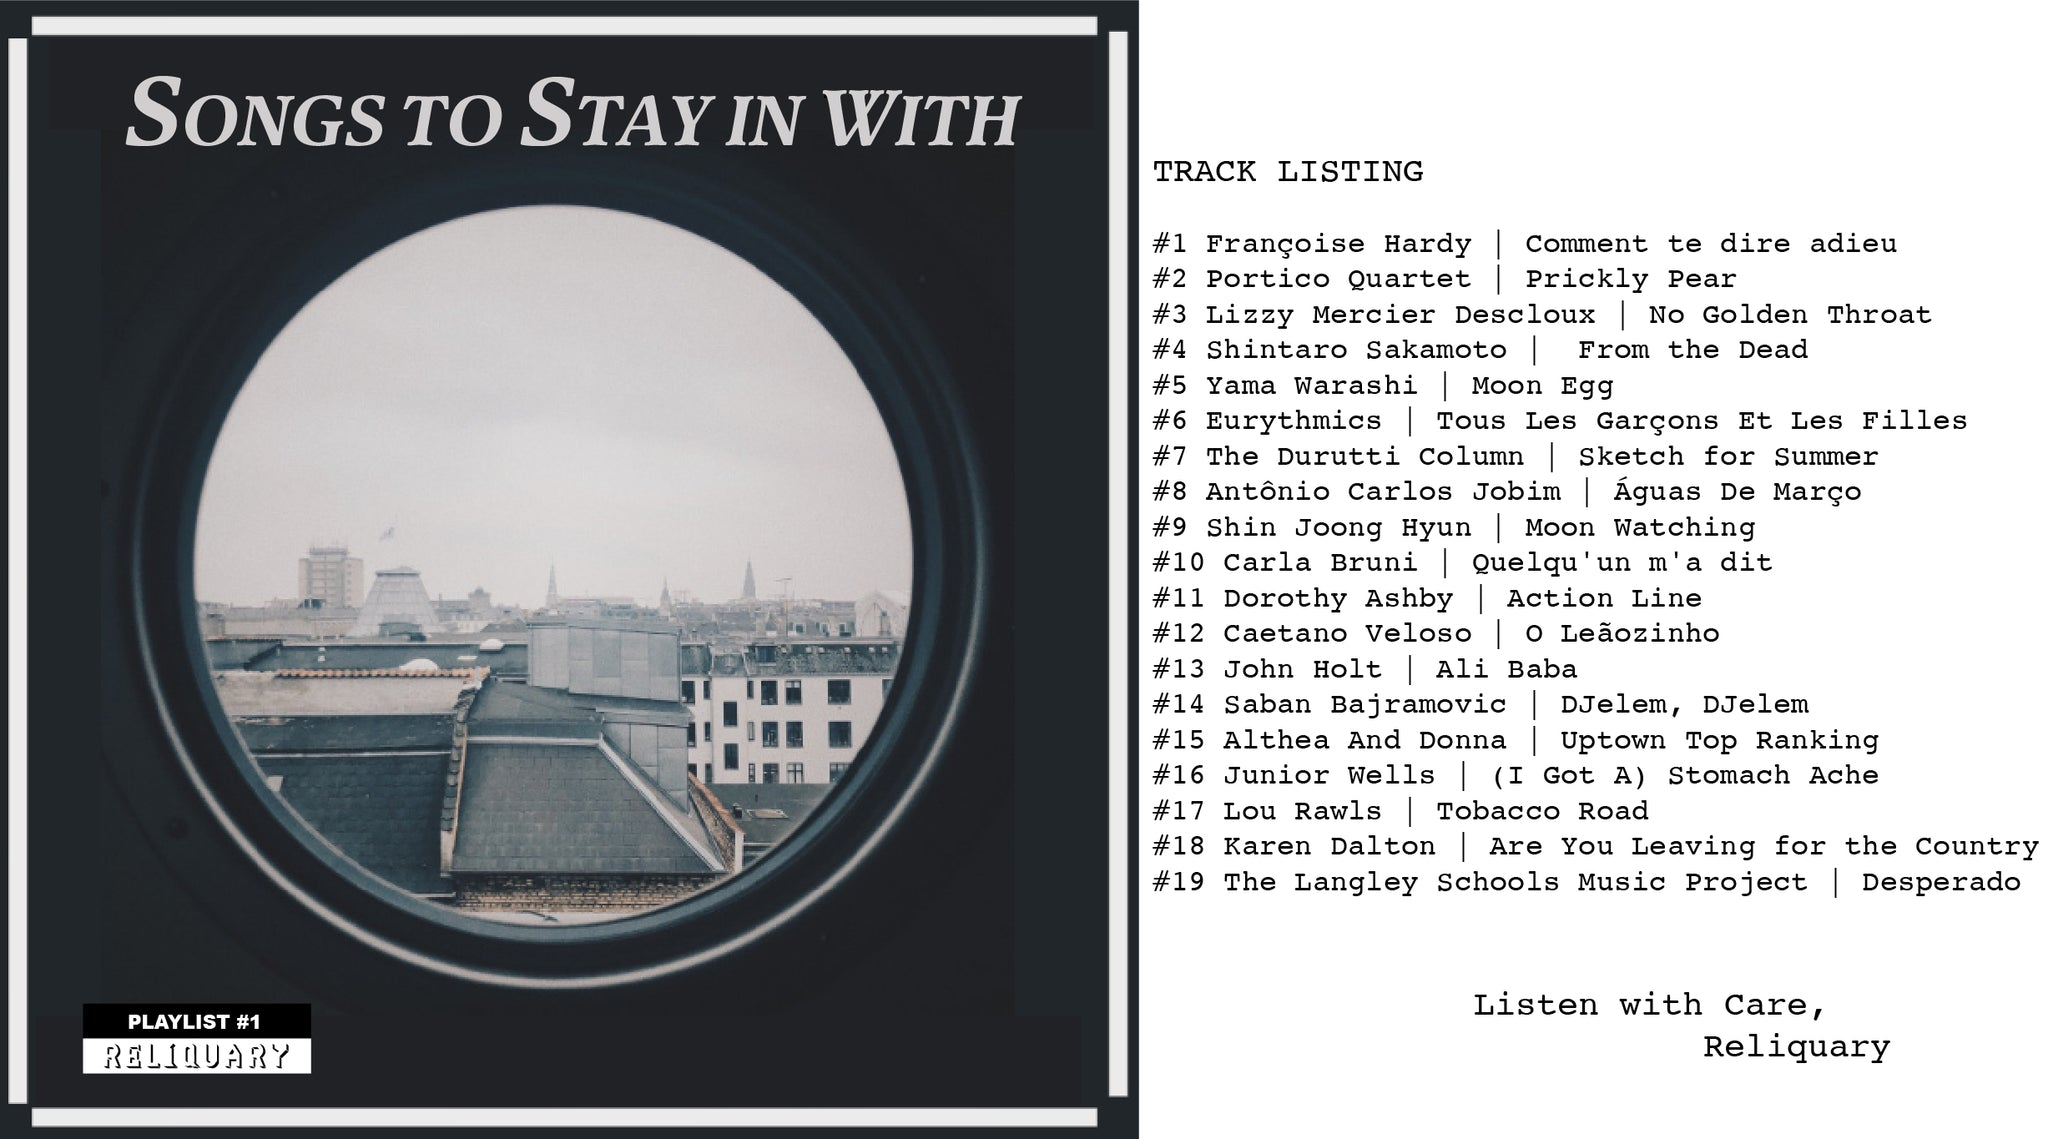 SONGS-TO-STAY-IN-WITH-PLAYLIST-#1